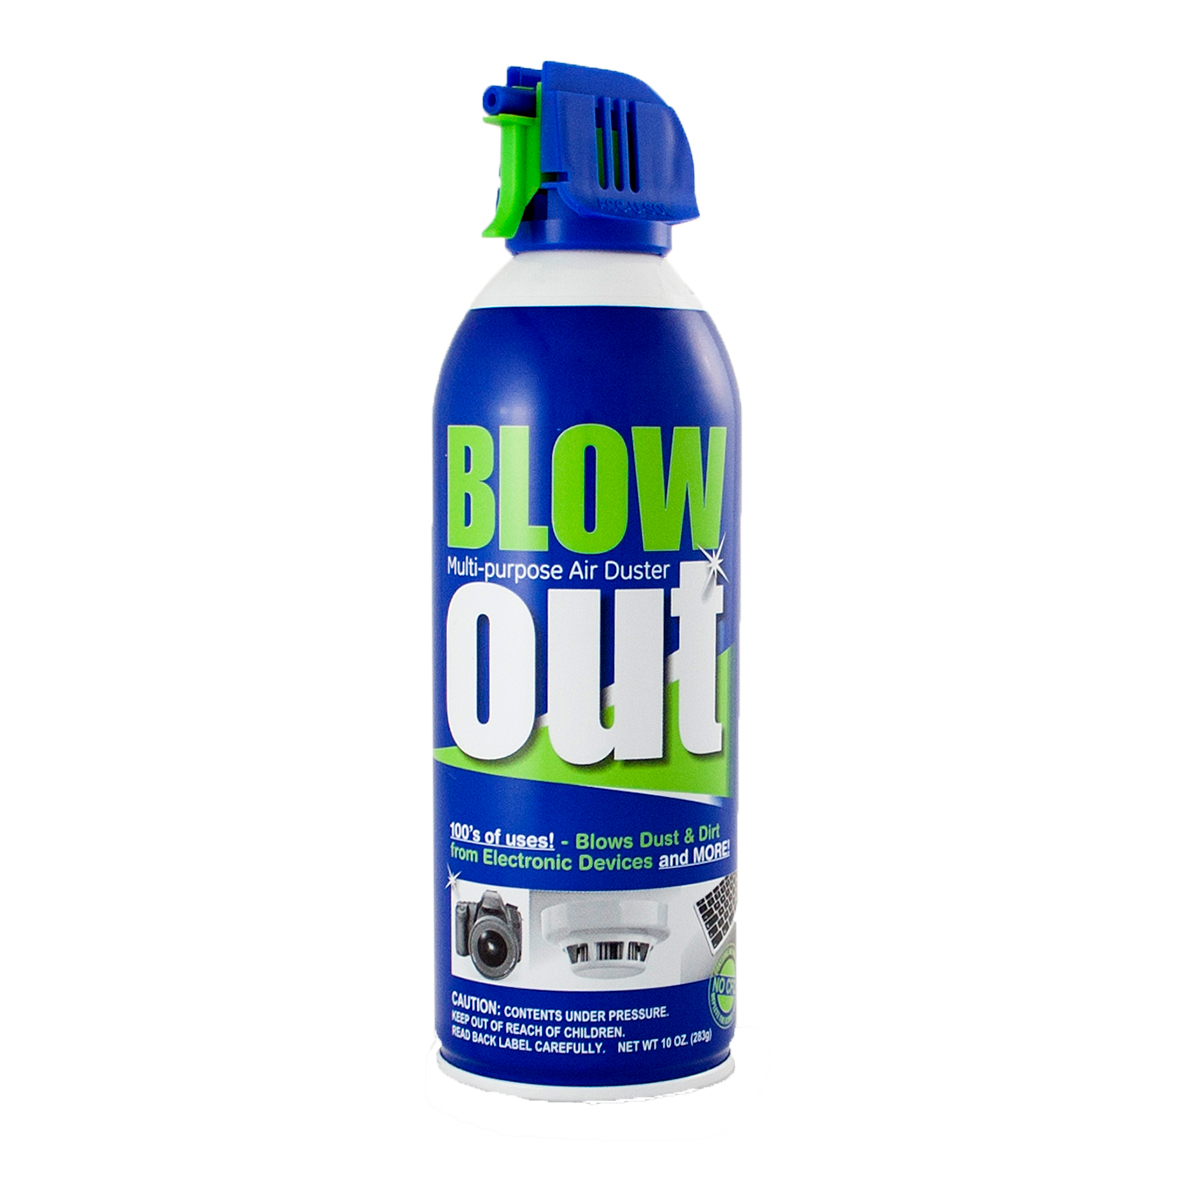 Solo_Blowout_BHD